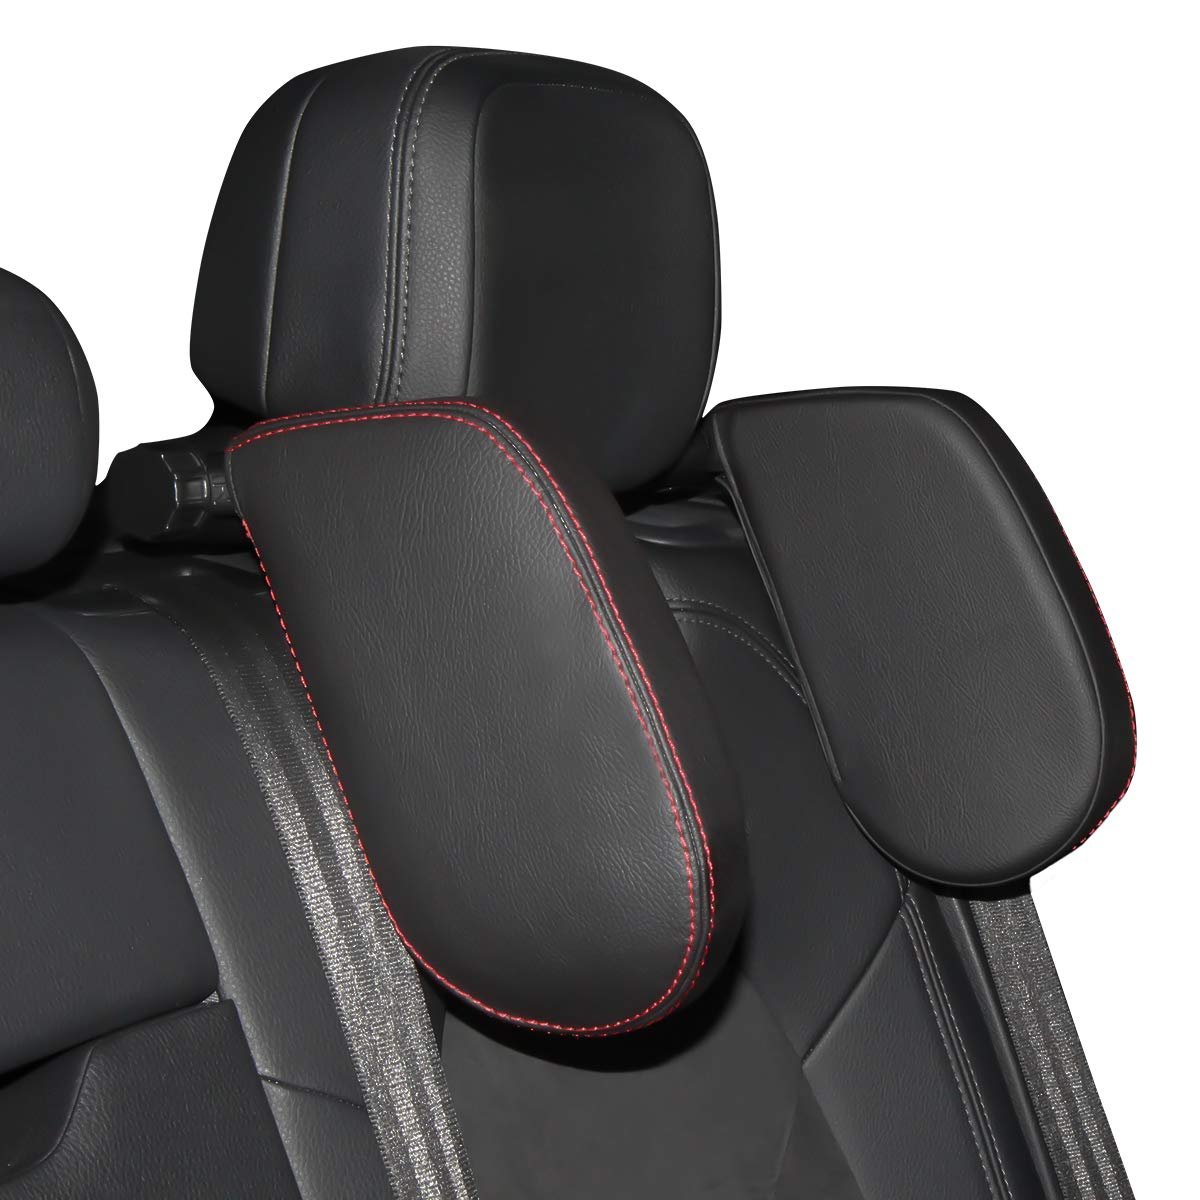 Aukee Car Seat Pillow Headrest Neck Support Travel Sleeping Cushion for Kids Adults Black by Aukee